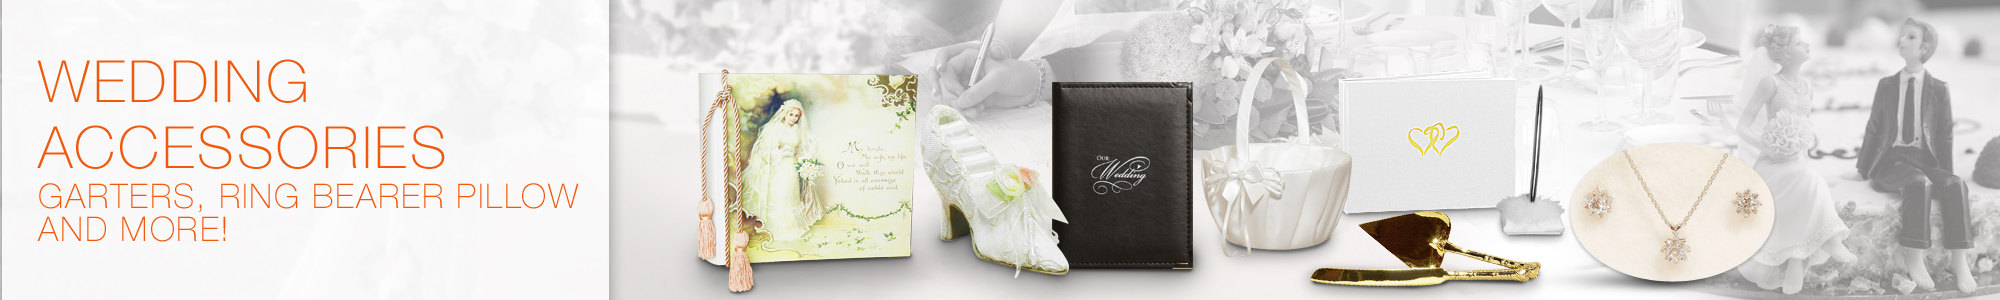 Wedding Accessories - Isabelle's Dreams